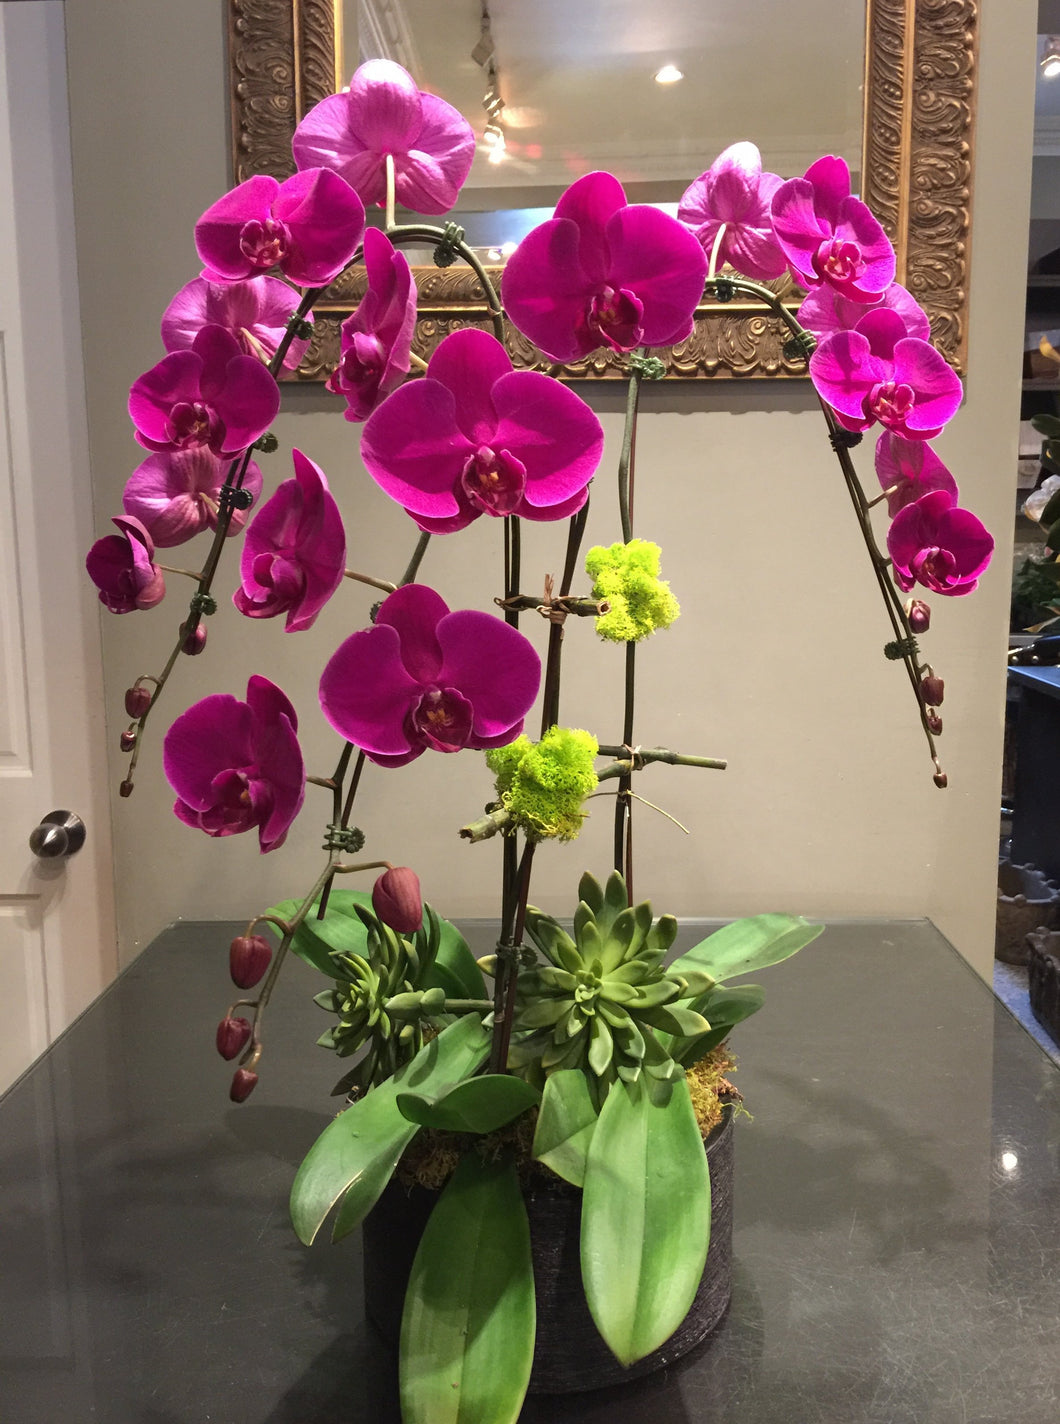 P3 - Luxurious Orchid Arrangement - Flowerplustoronto